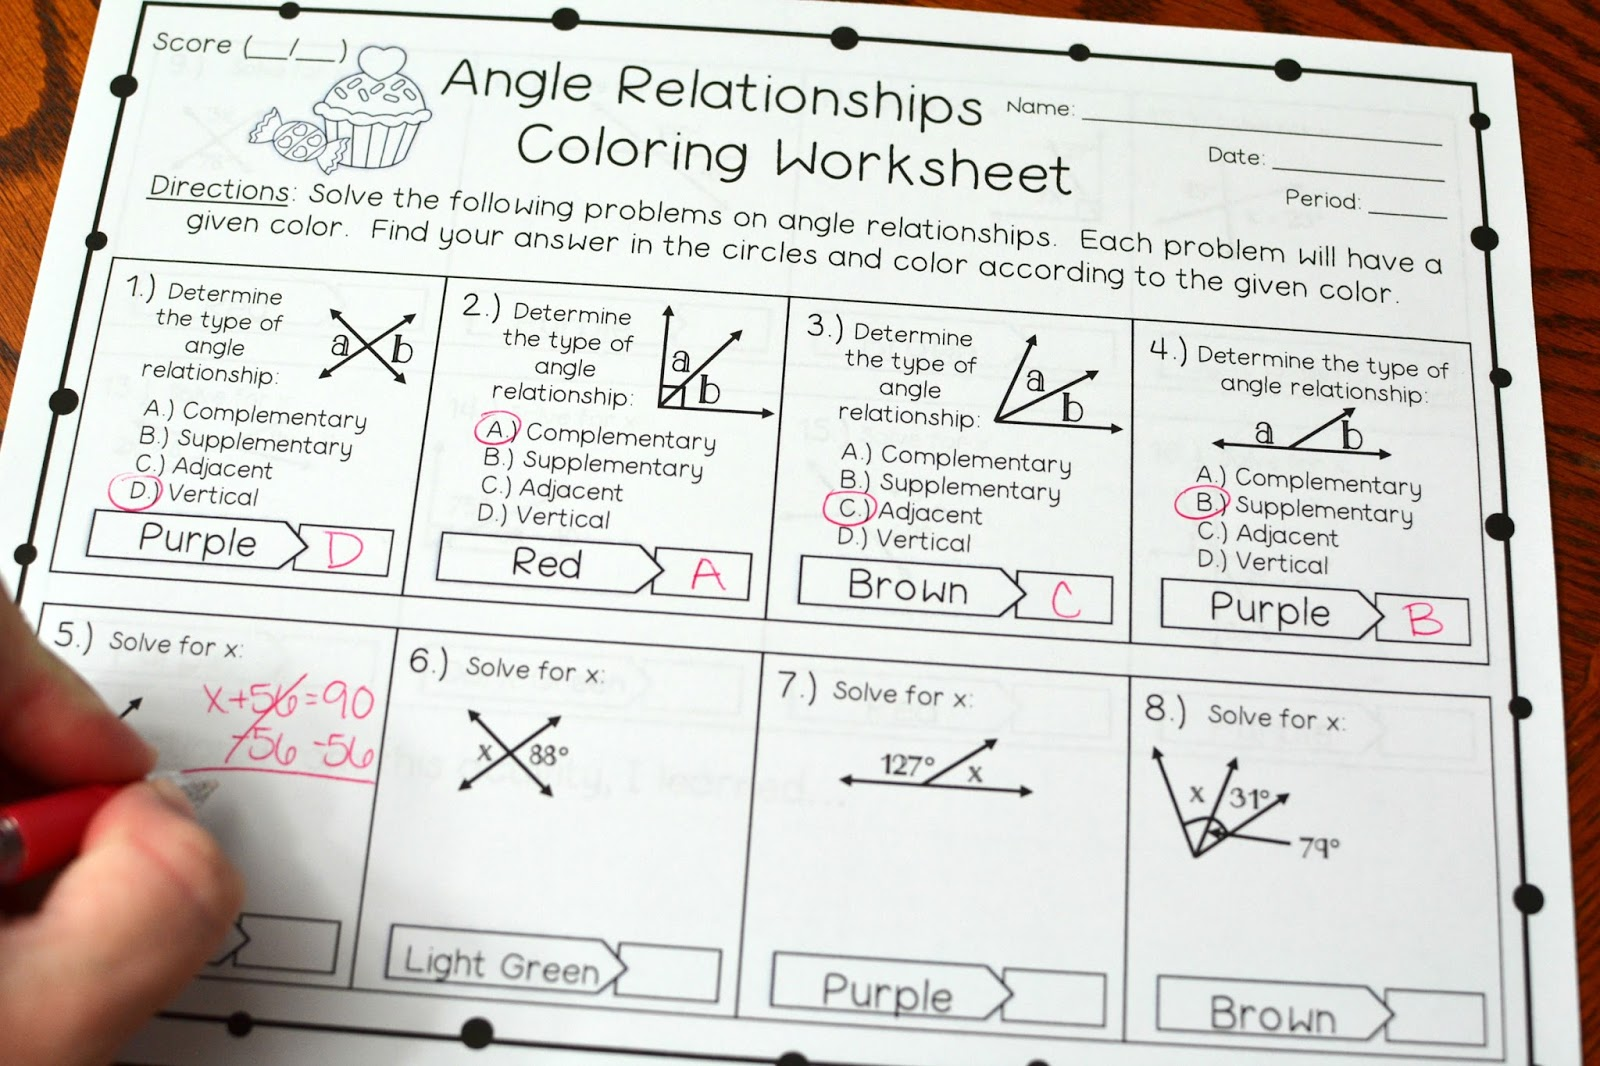 Angle Relationships Coloring Worksheet